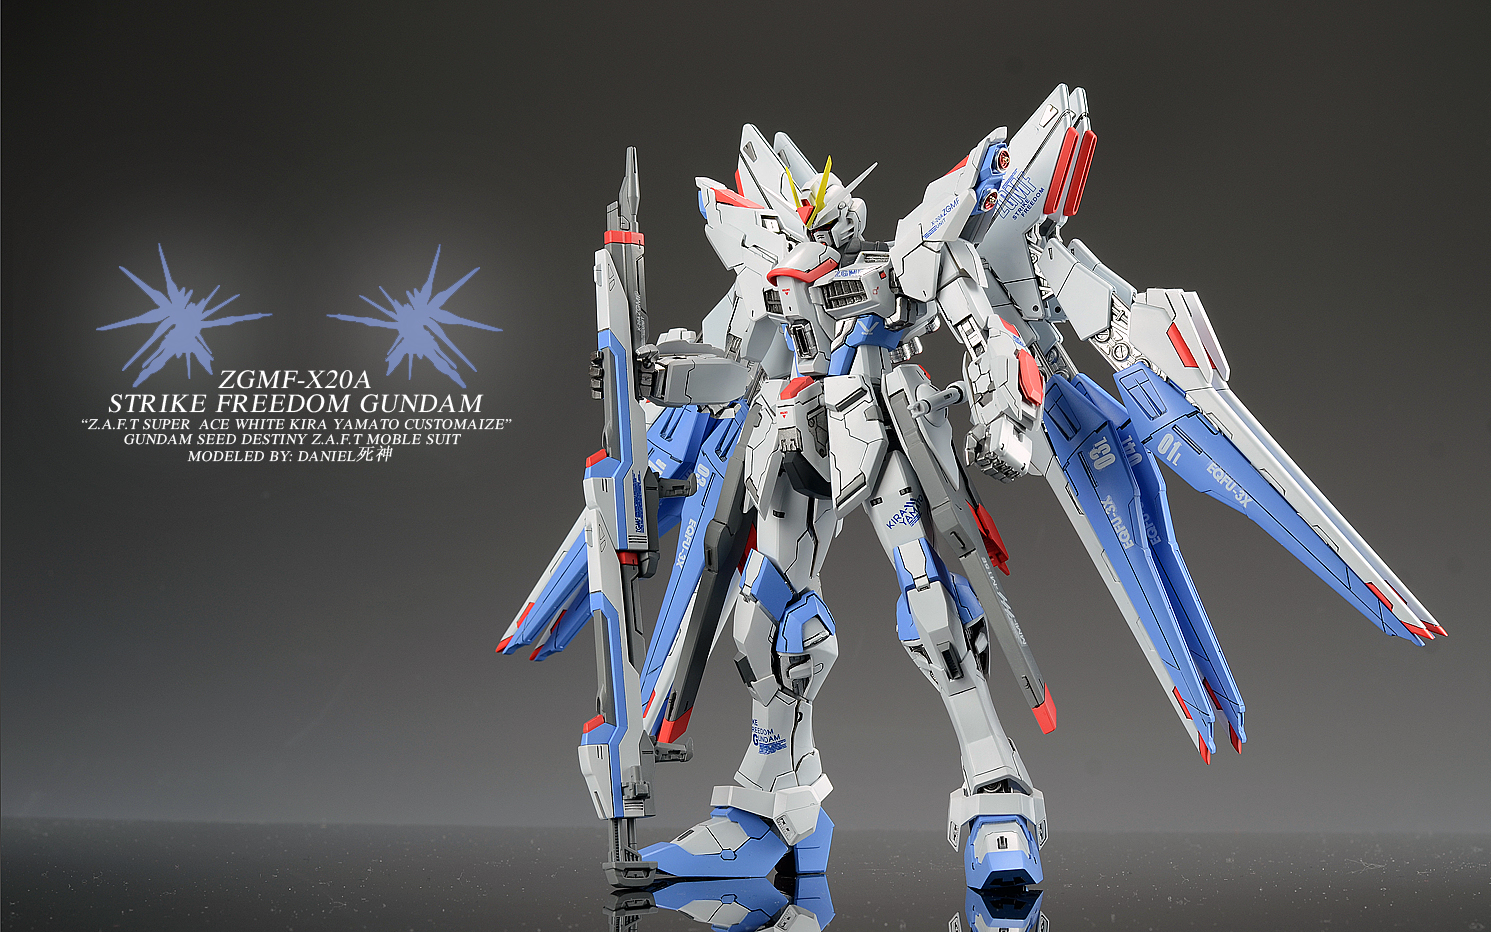 VP Strike Freedom Gundam Verdaniel Photoreview No17 Wallpaper 1491x932